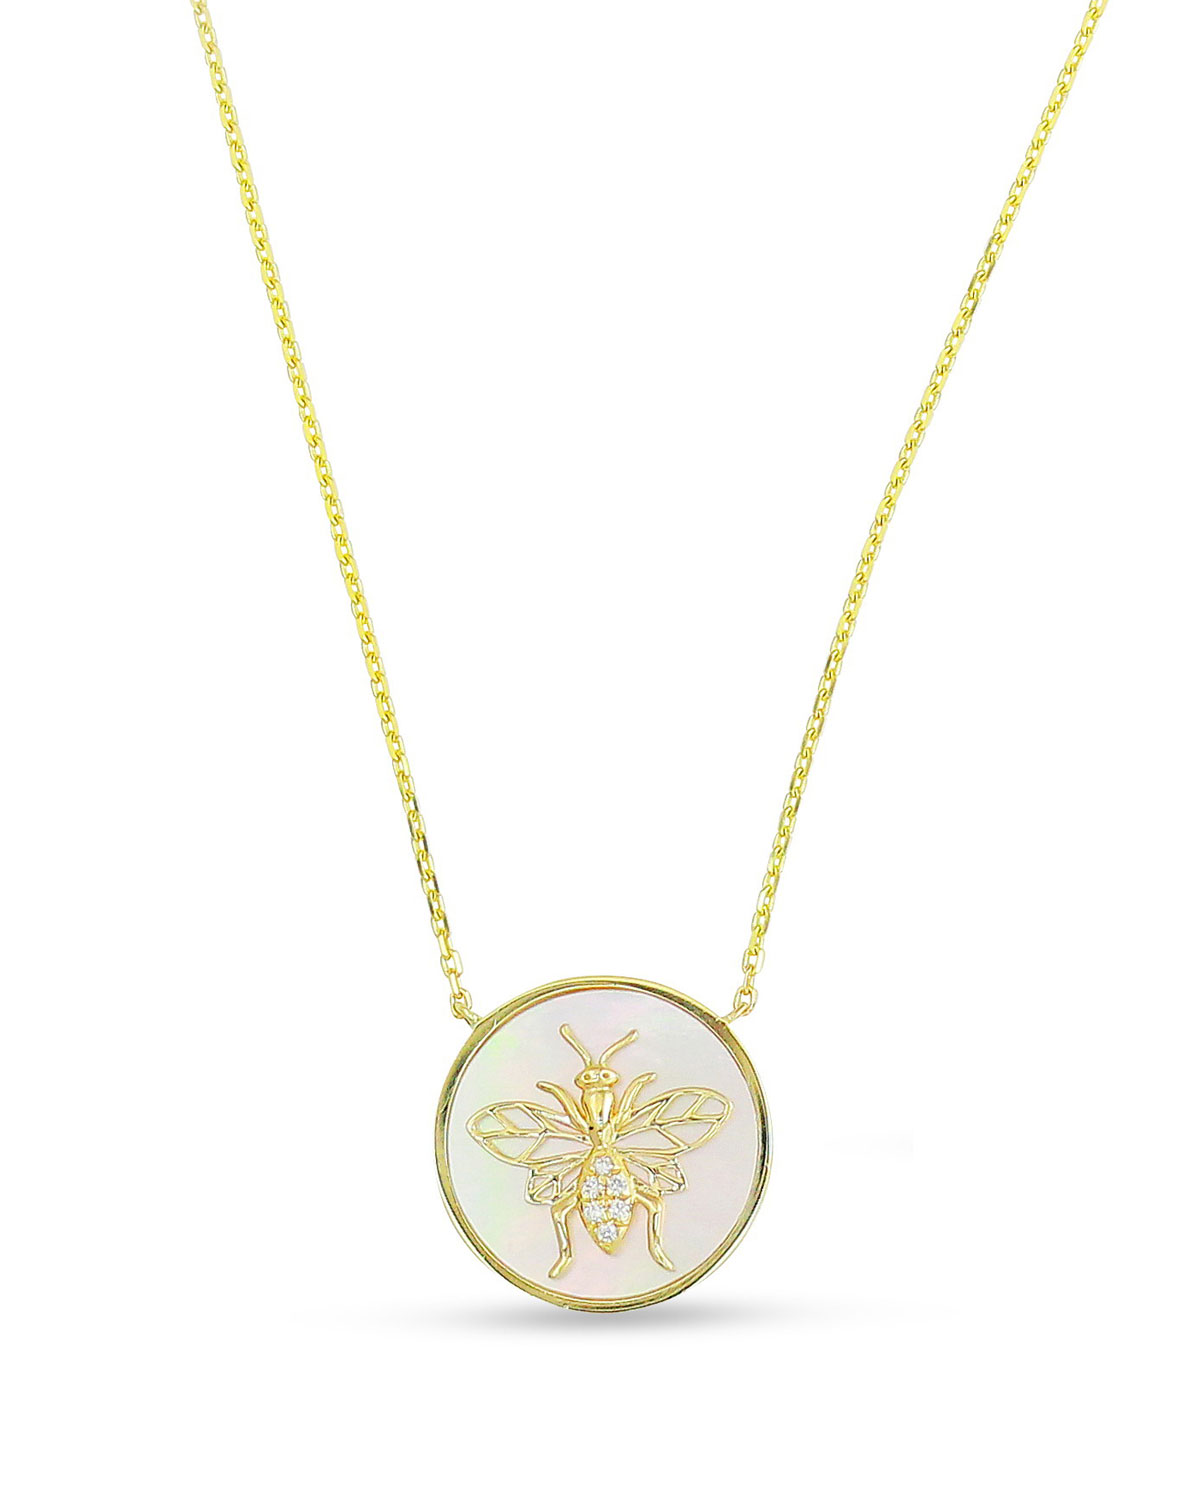 FREDERIC SAGE 18K Gold, Diamond Bee & Mother-Of-Pearl Pendant Necklace